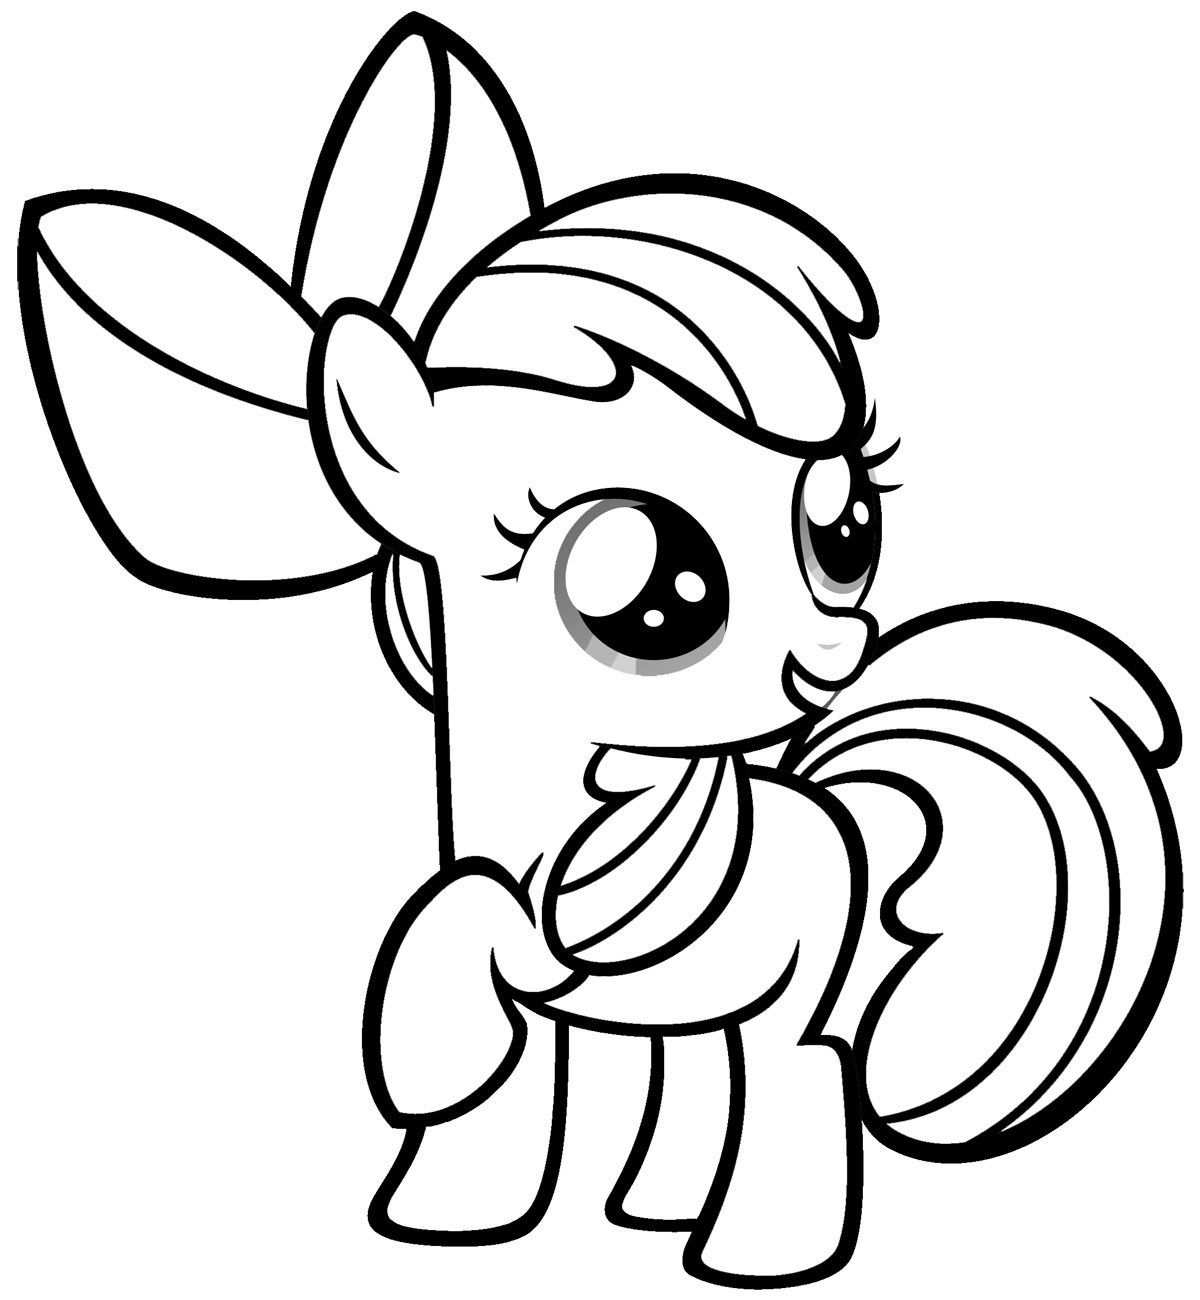 My little pony friendship magic coloring pages print - My Little Pony Coloring Pages To Print Free Printable My Little Pony Coloring Pages For